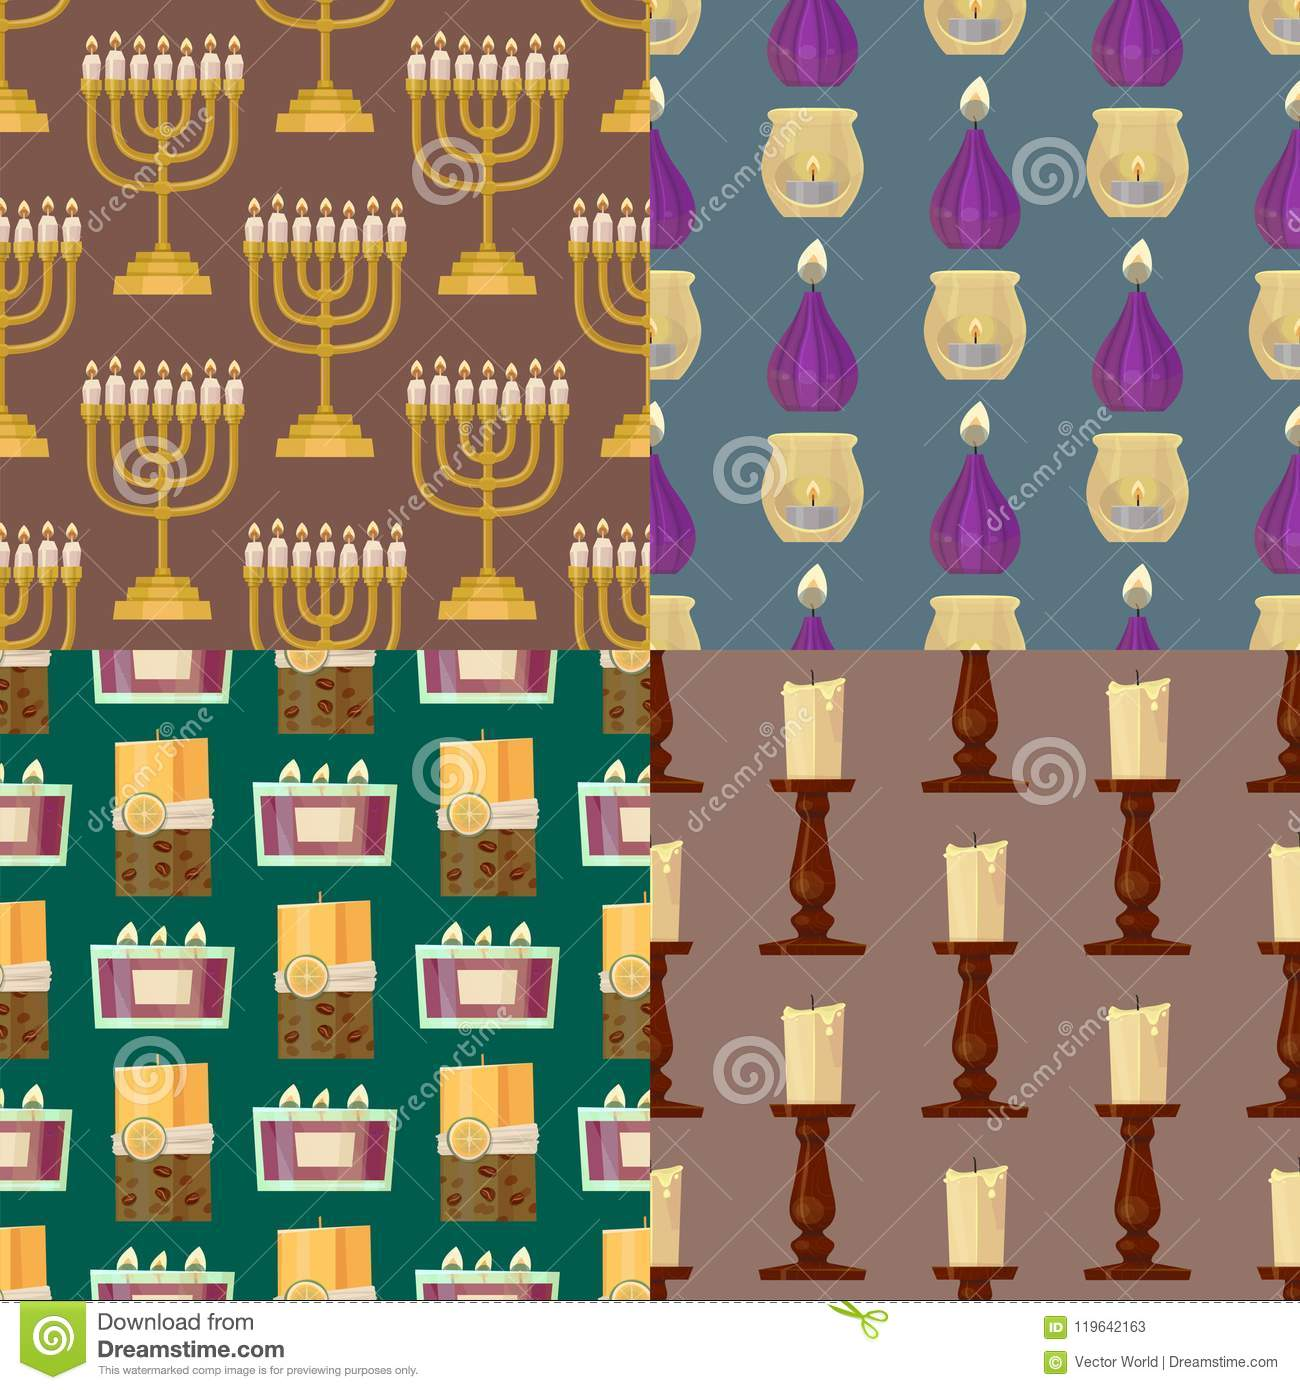 Celebration glowing religion candles seamless pattern background romance night bright flam burning object vector